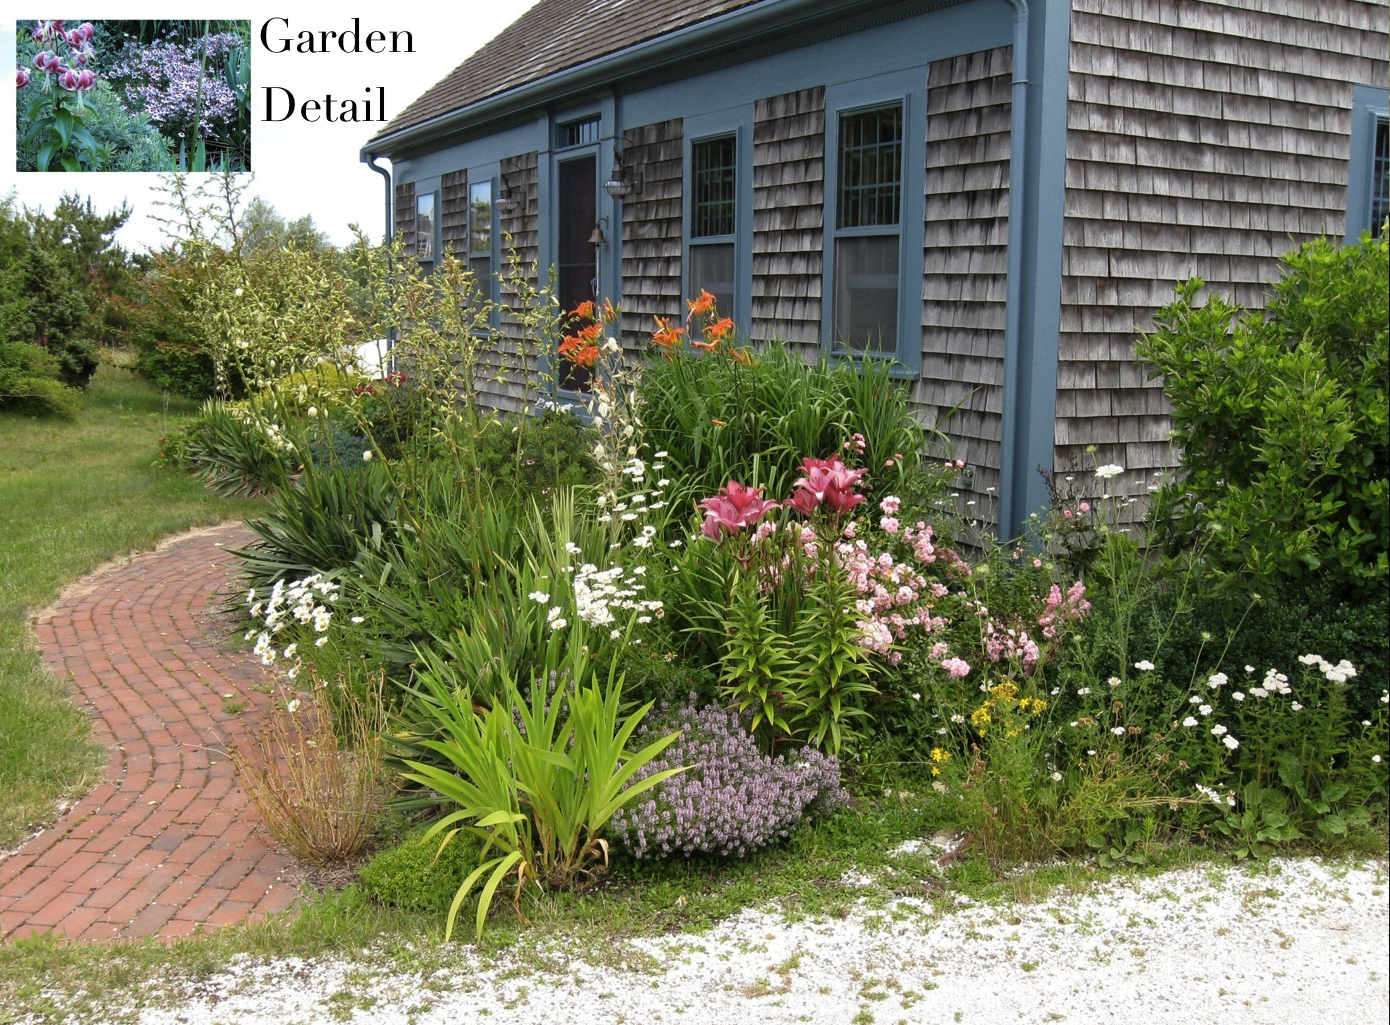 Cape cod historic homes blog gardening with native for Garden design for home